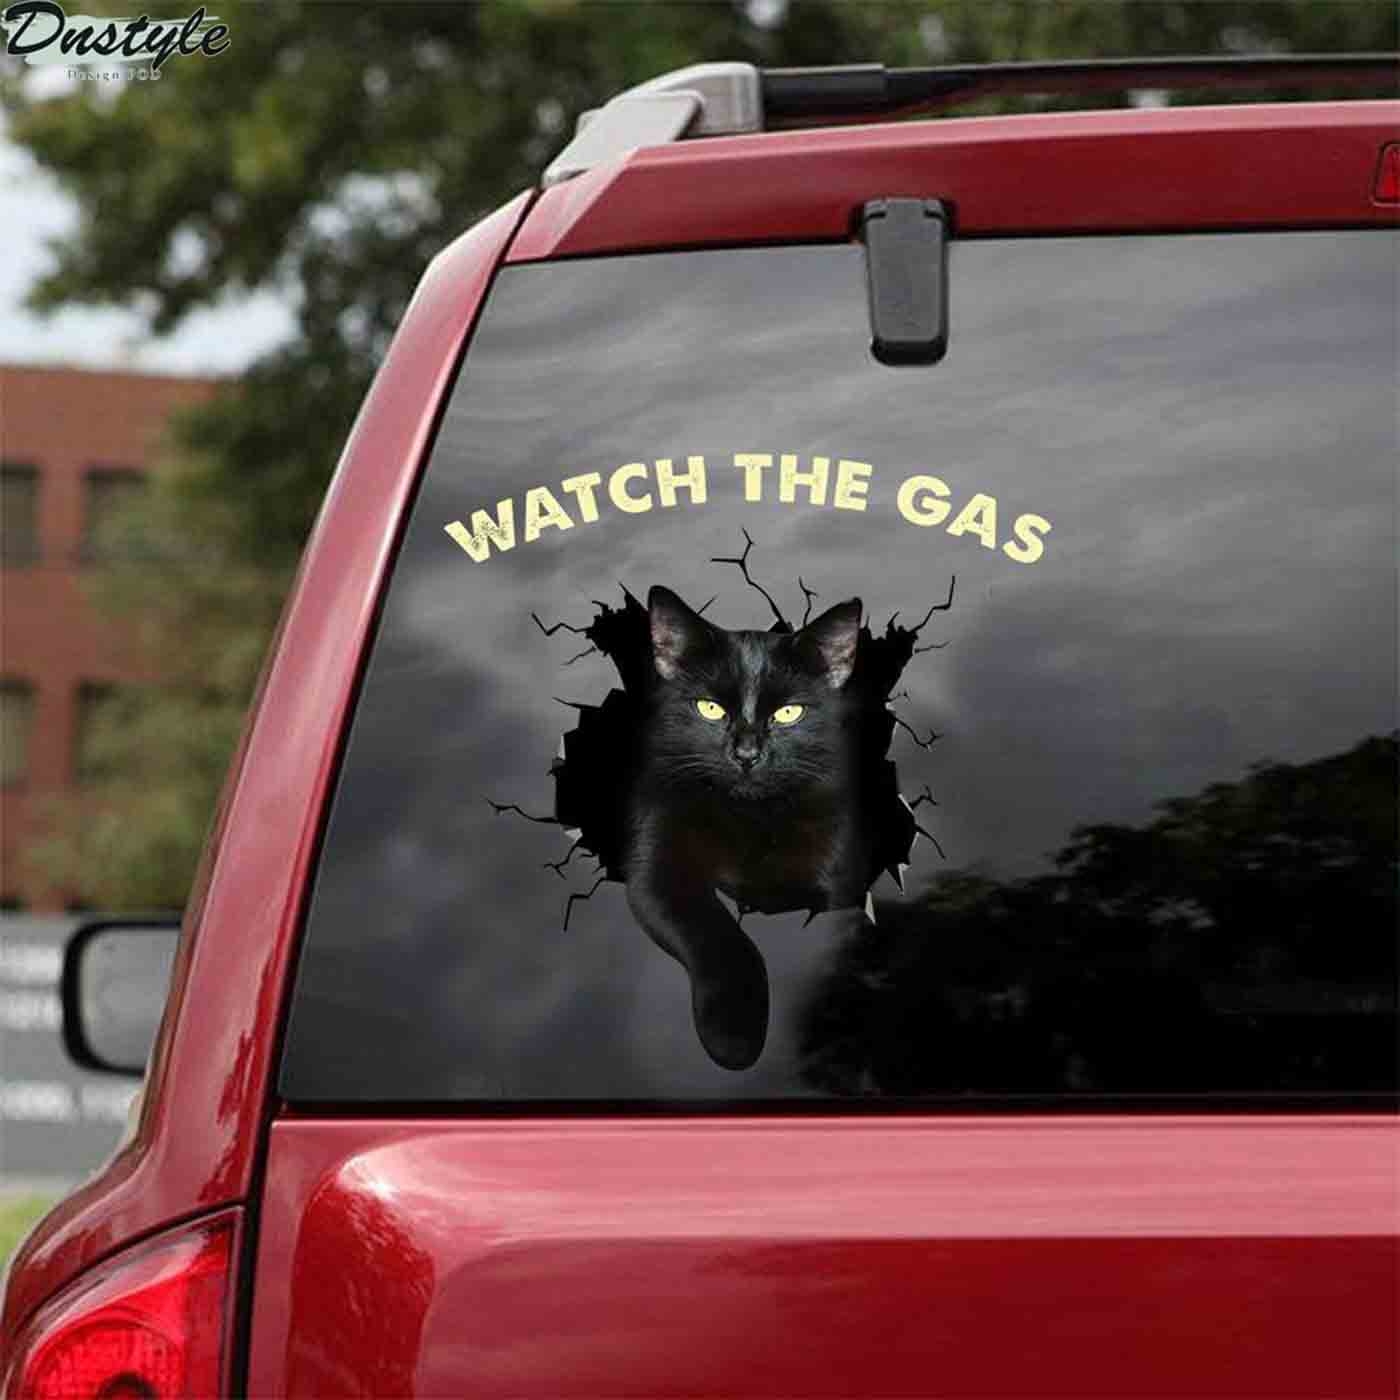 Black cats watch the gas car decal sticker 2